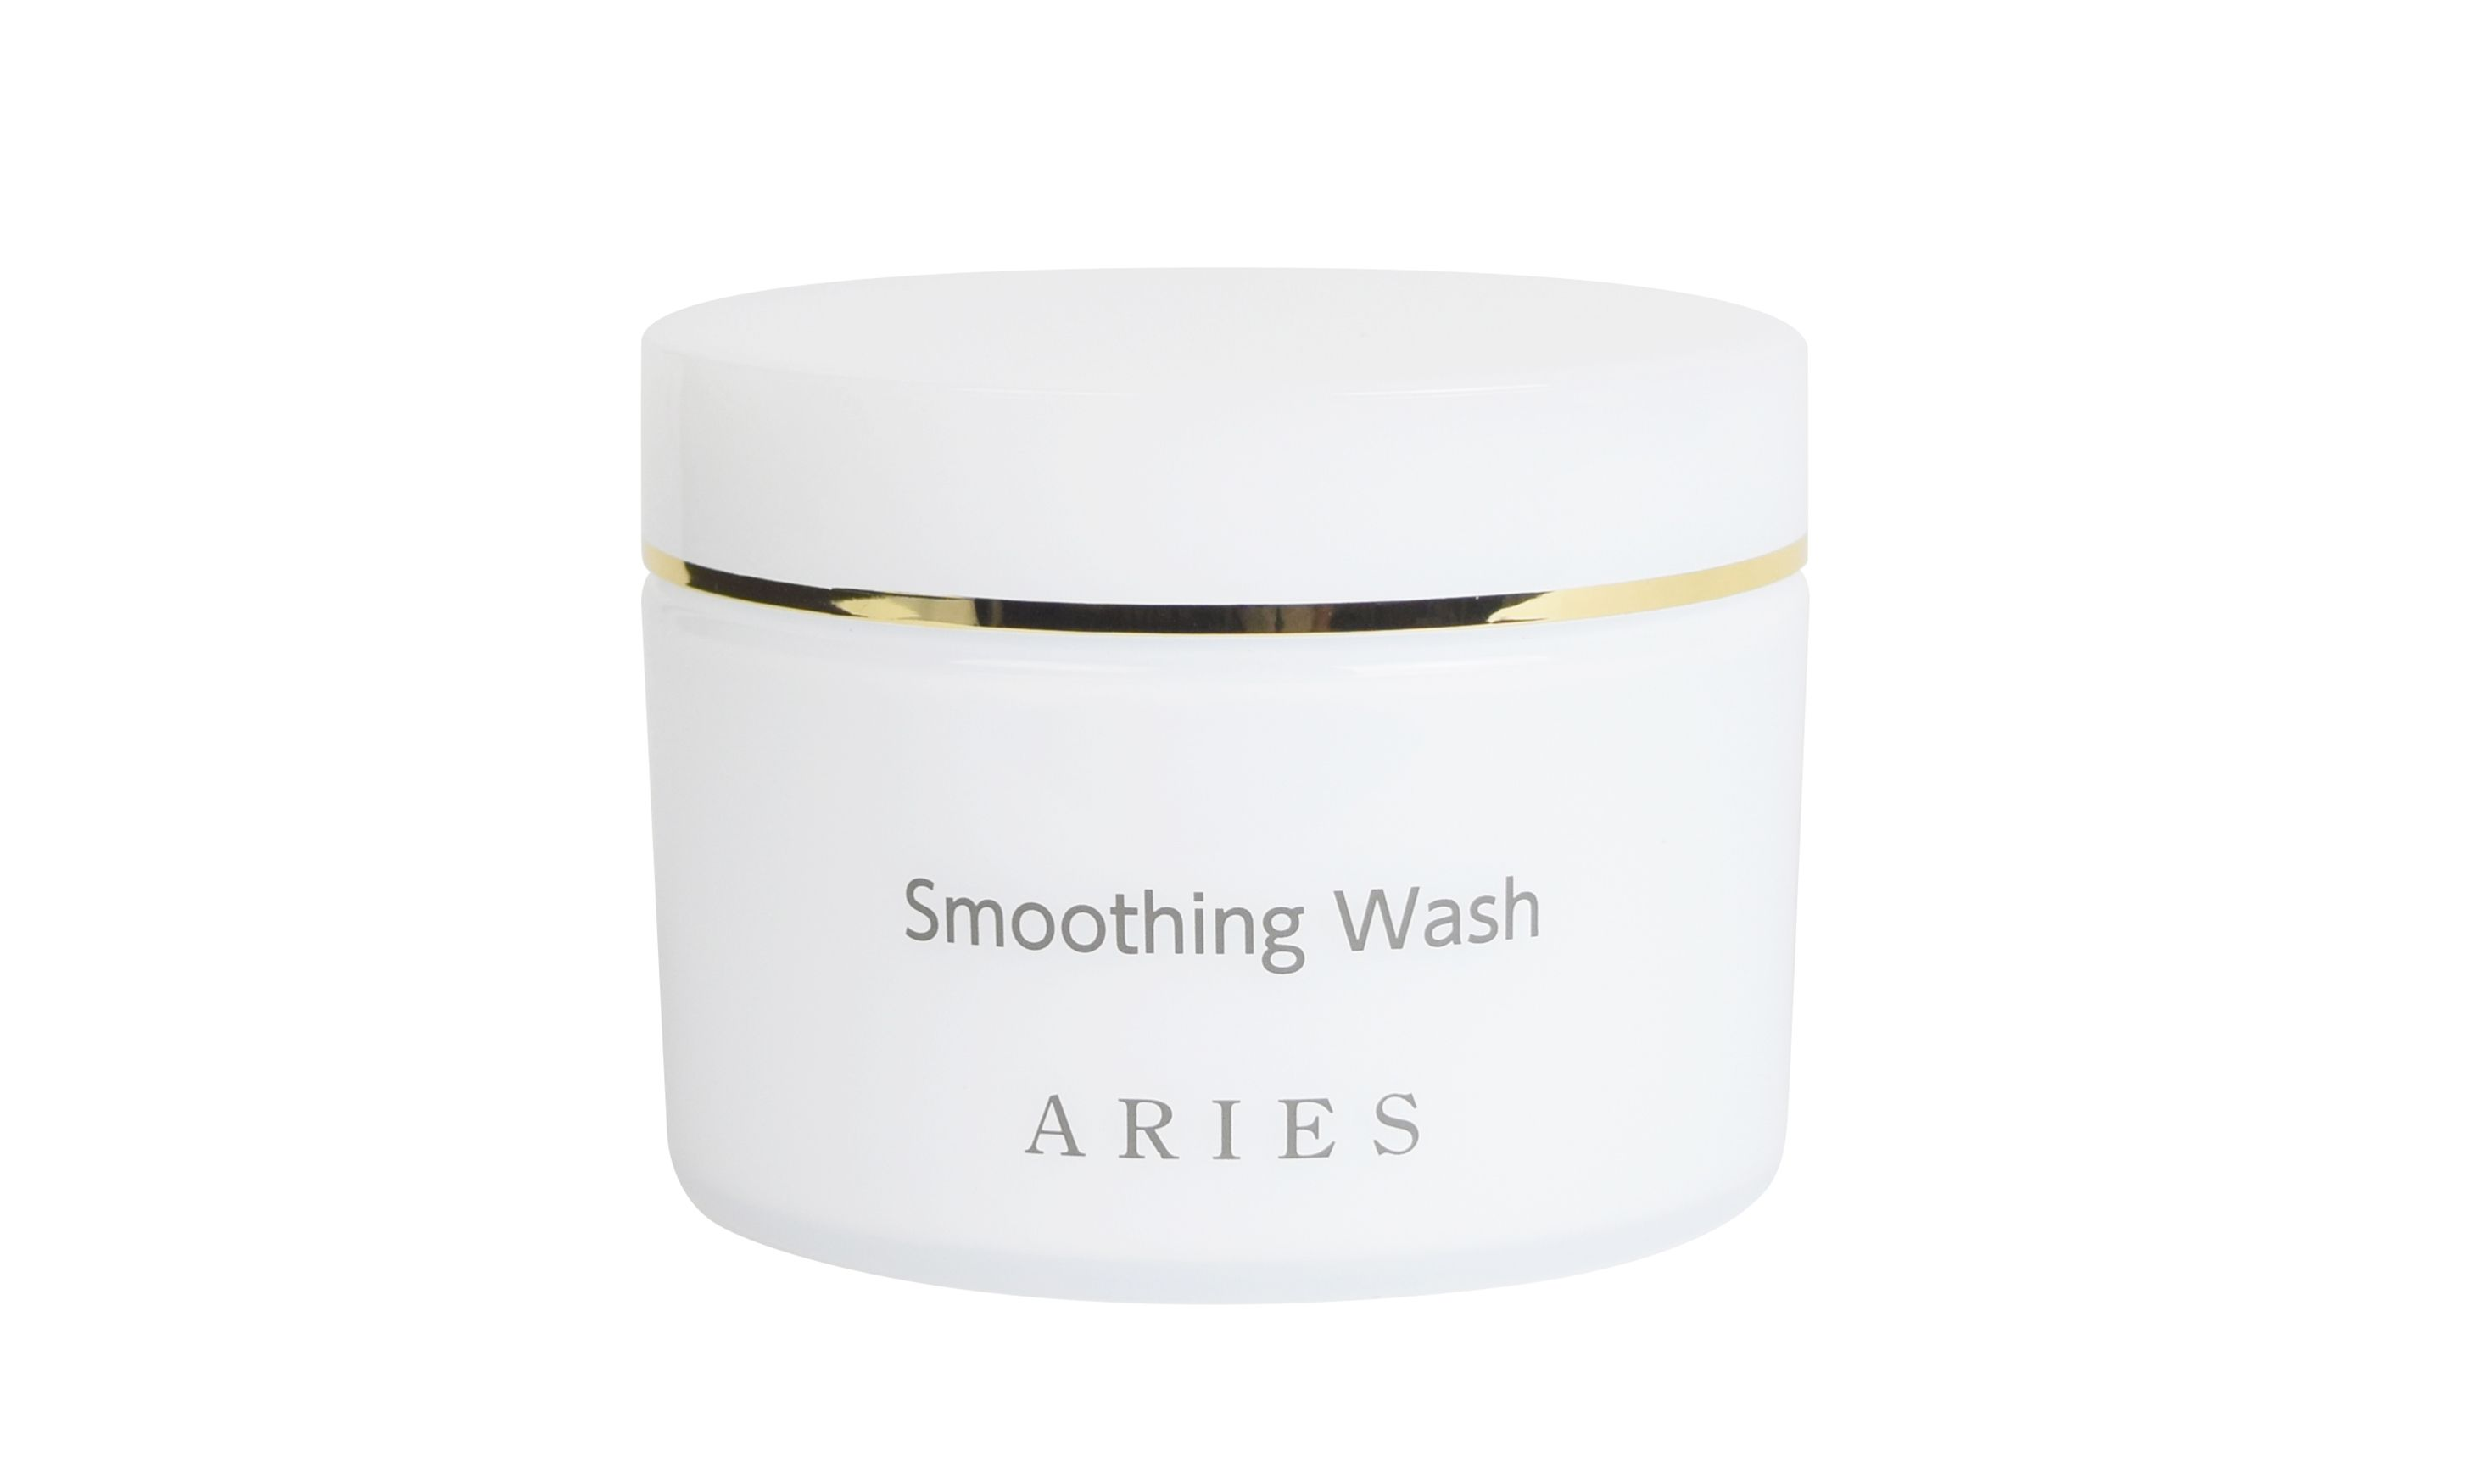 ARIES Smoothing Wash